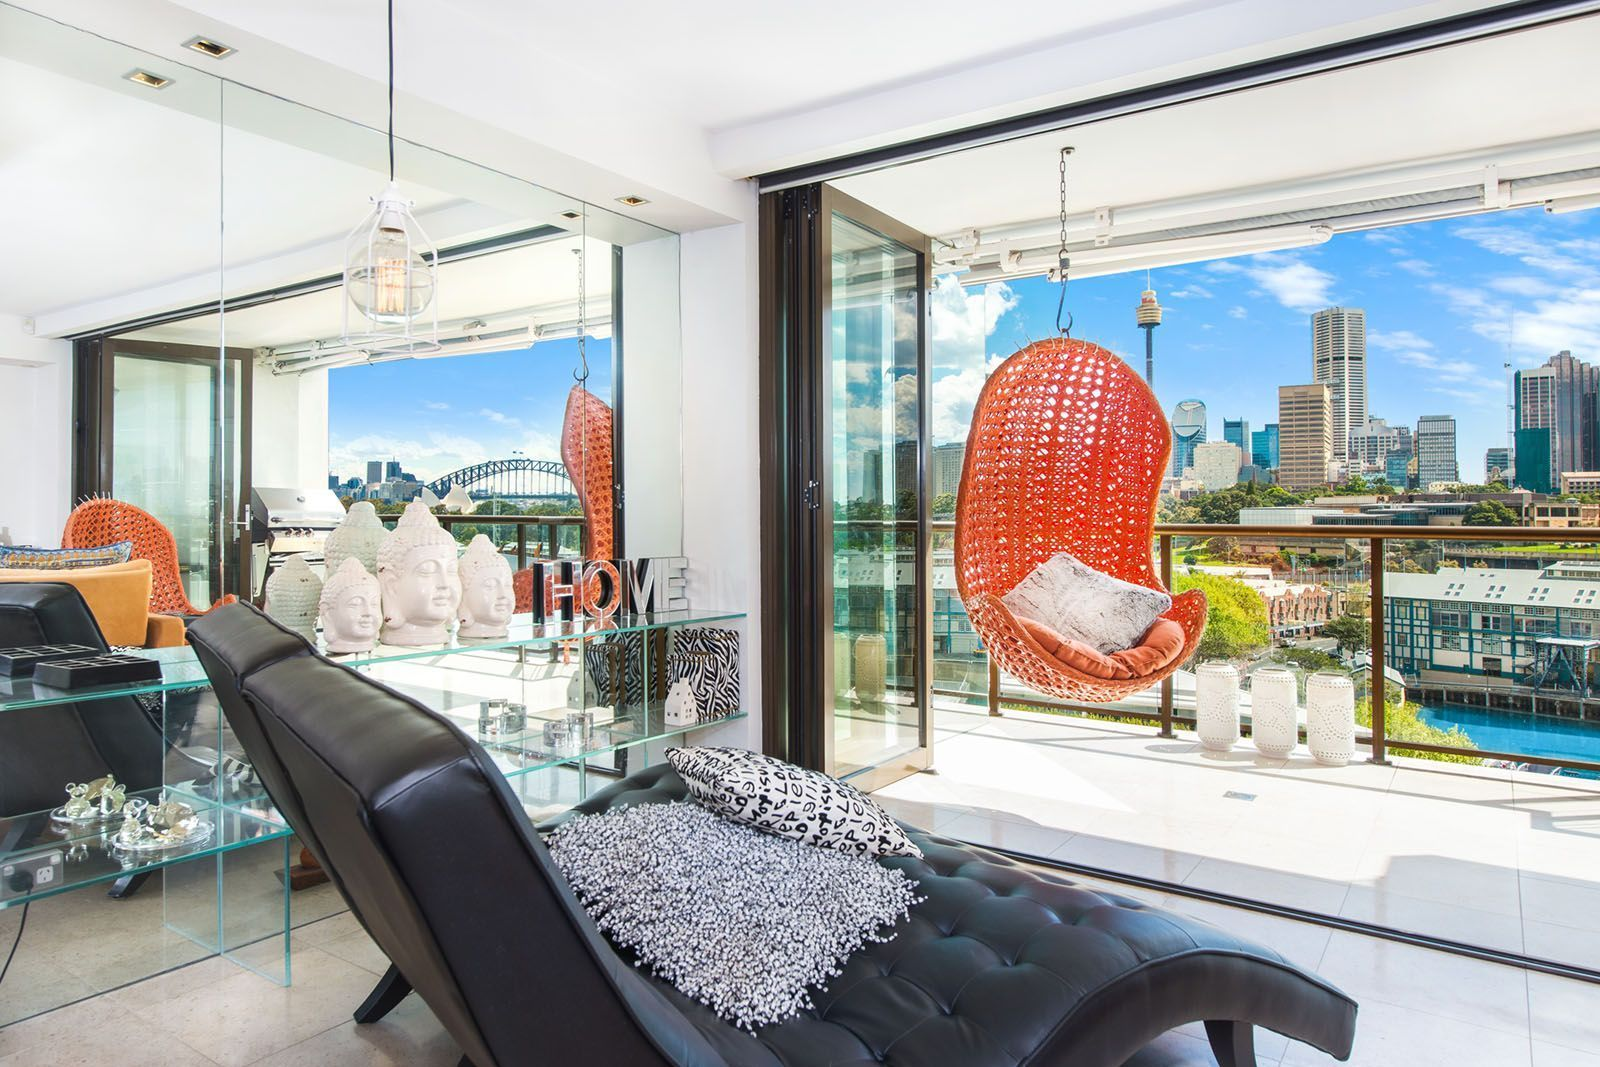 Top interior design top tips and style predictions for 2017